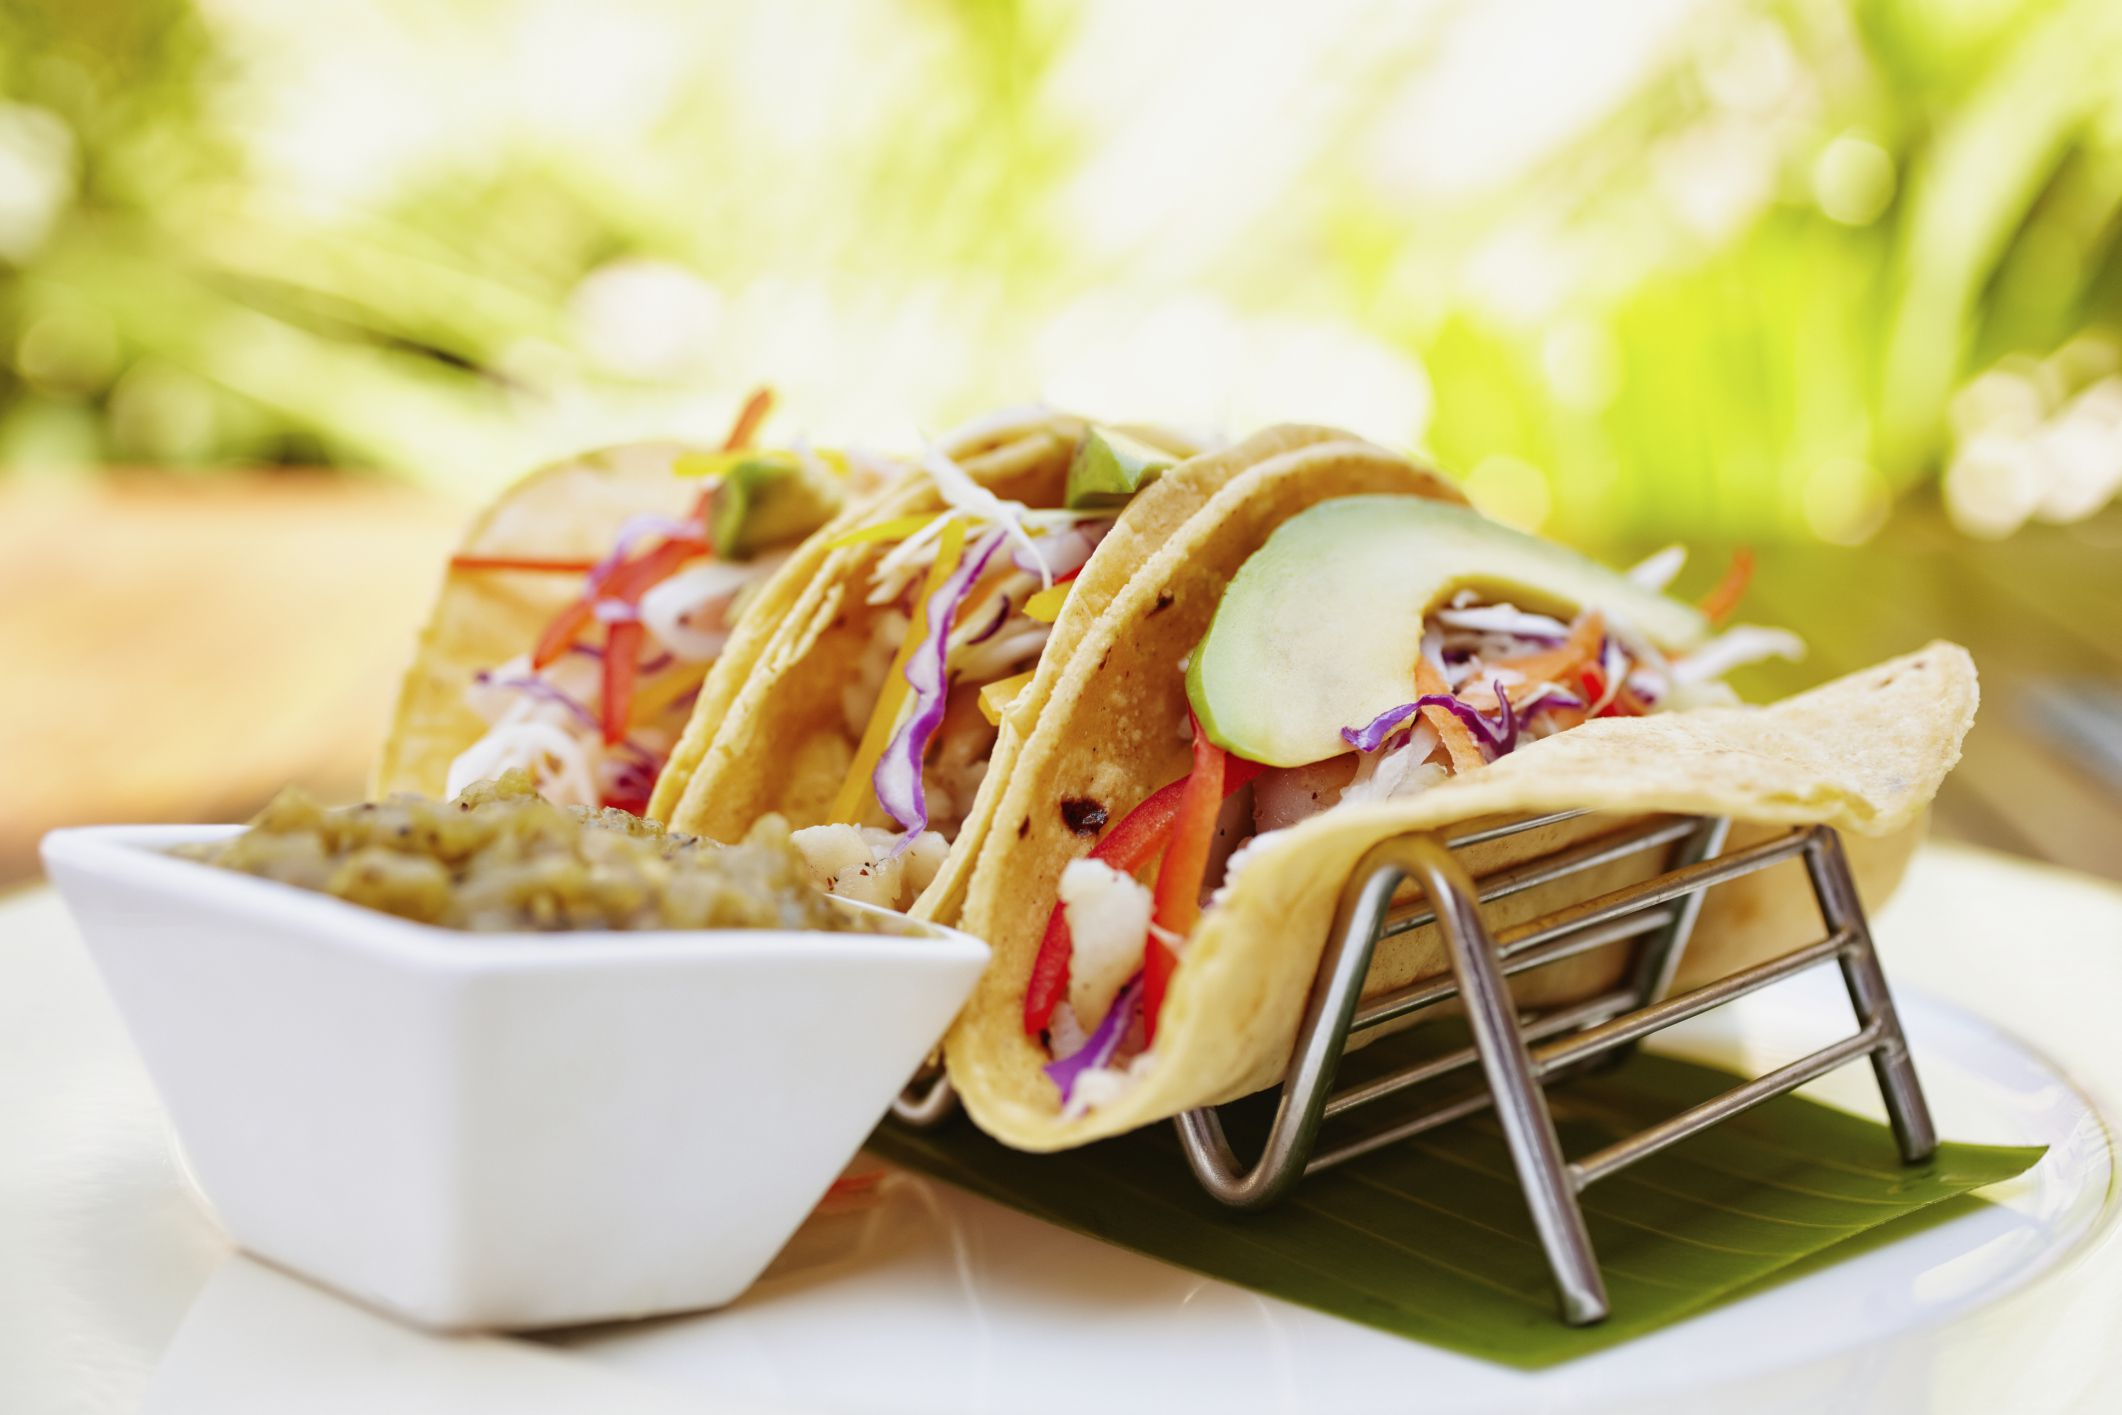 How To Make Healthy Mexican Food At Home